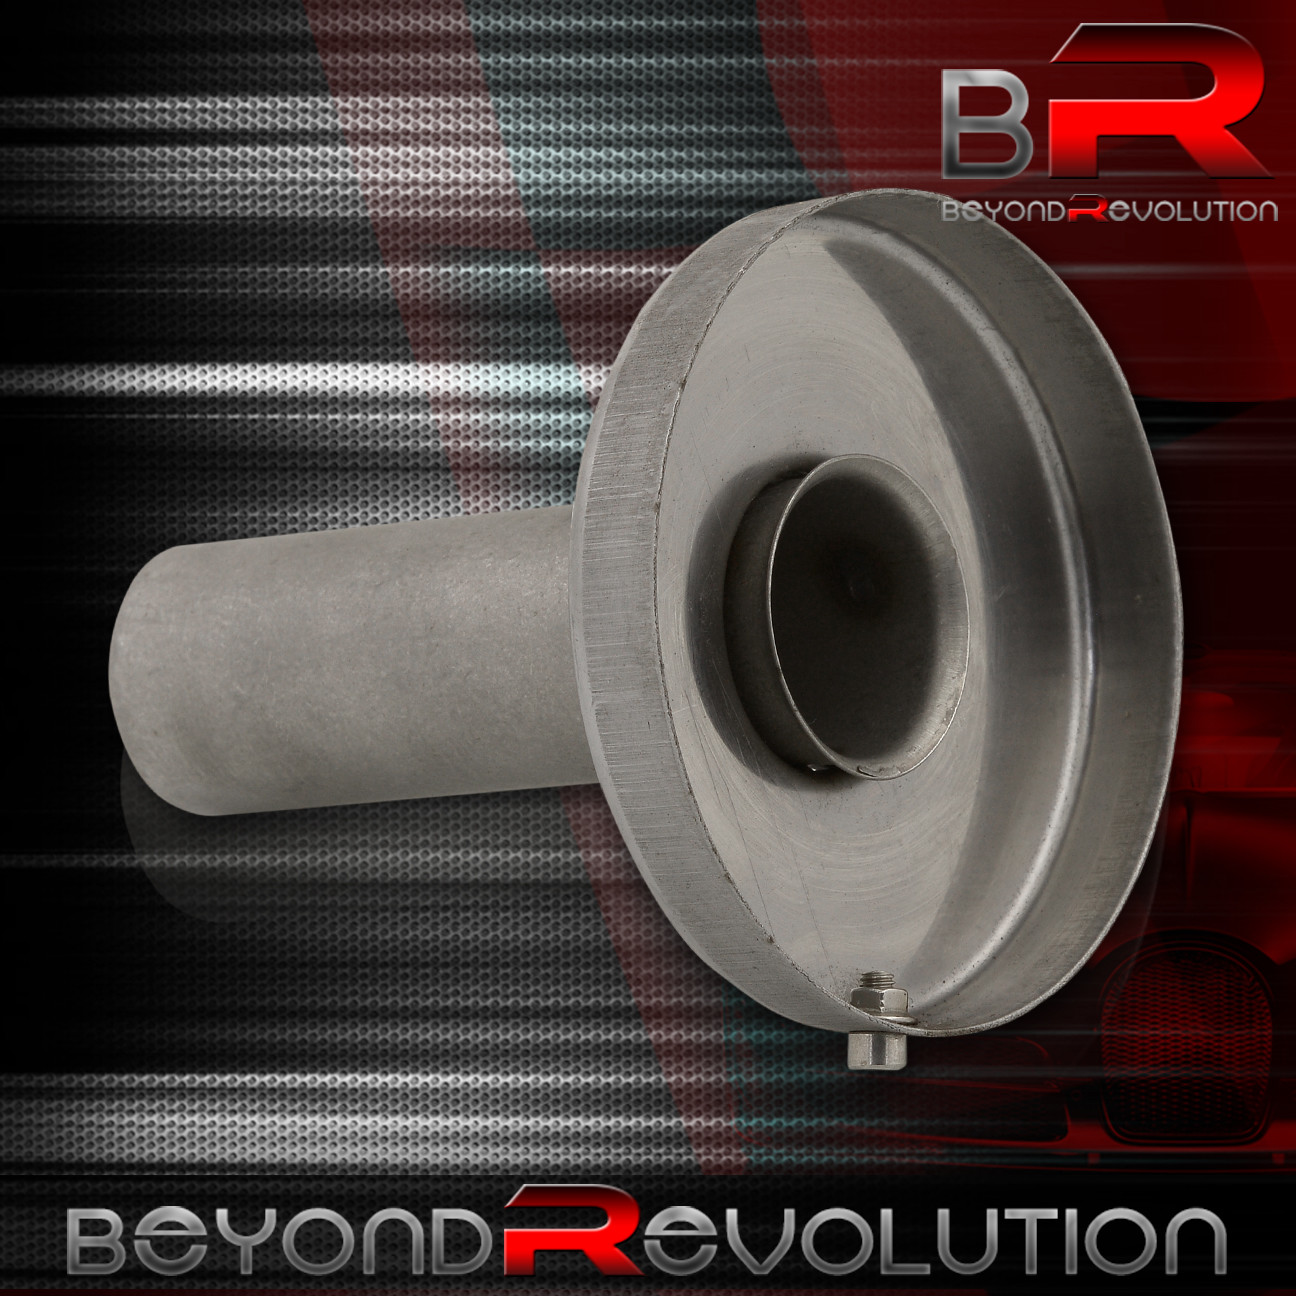 Universal Catback Cat Back Muffler Exhaust Removeable Adjustable Silencer Reducer 4.5 Stainless Steel Tip